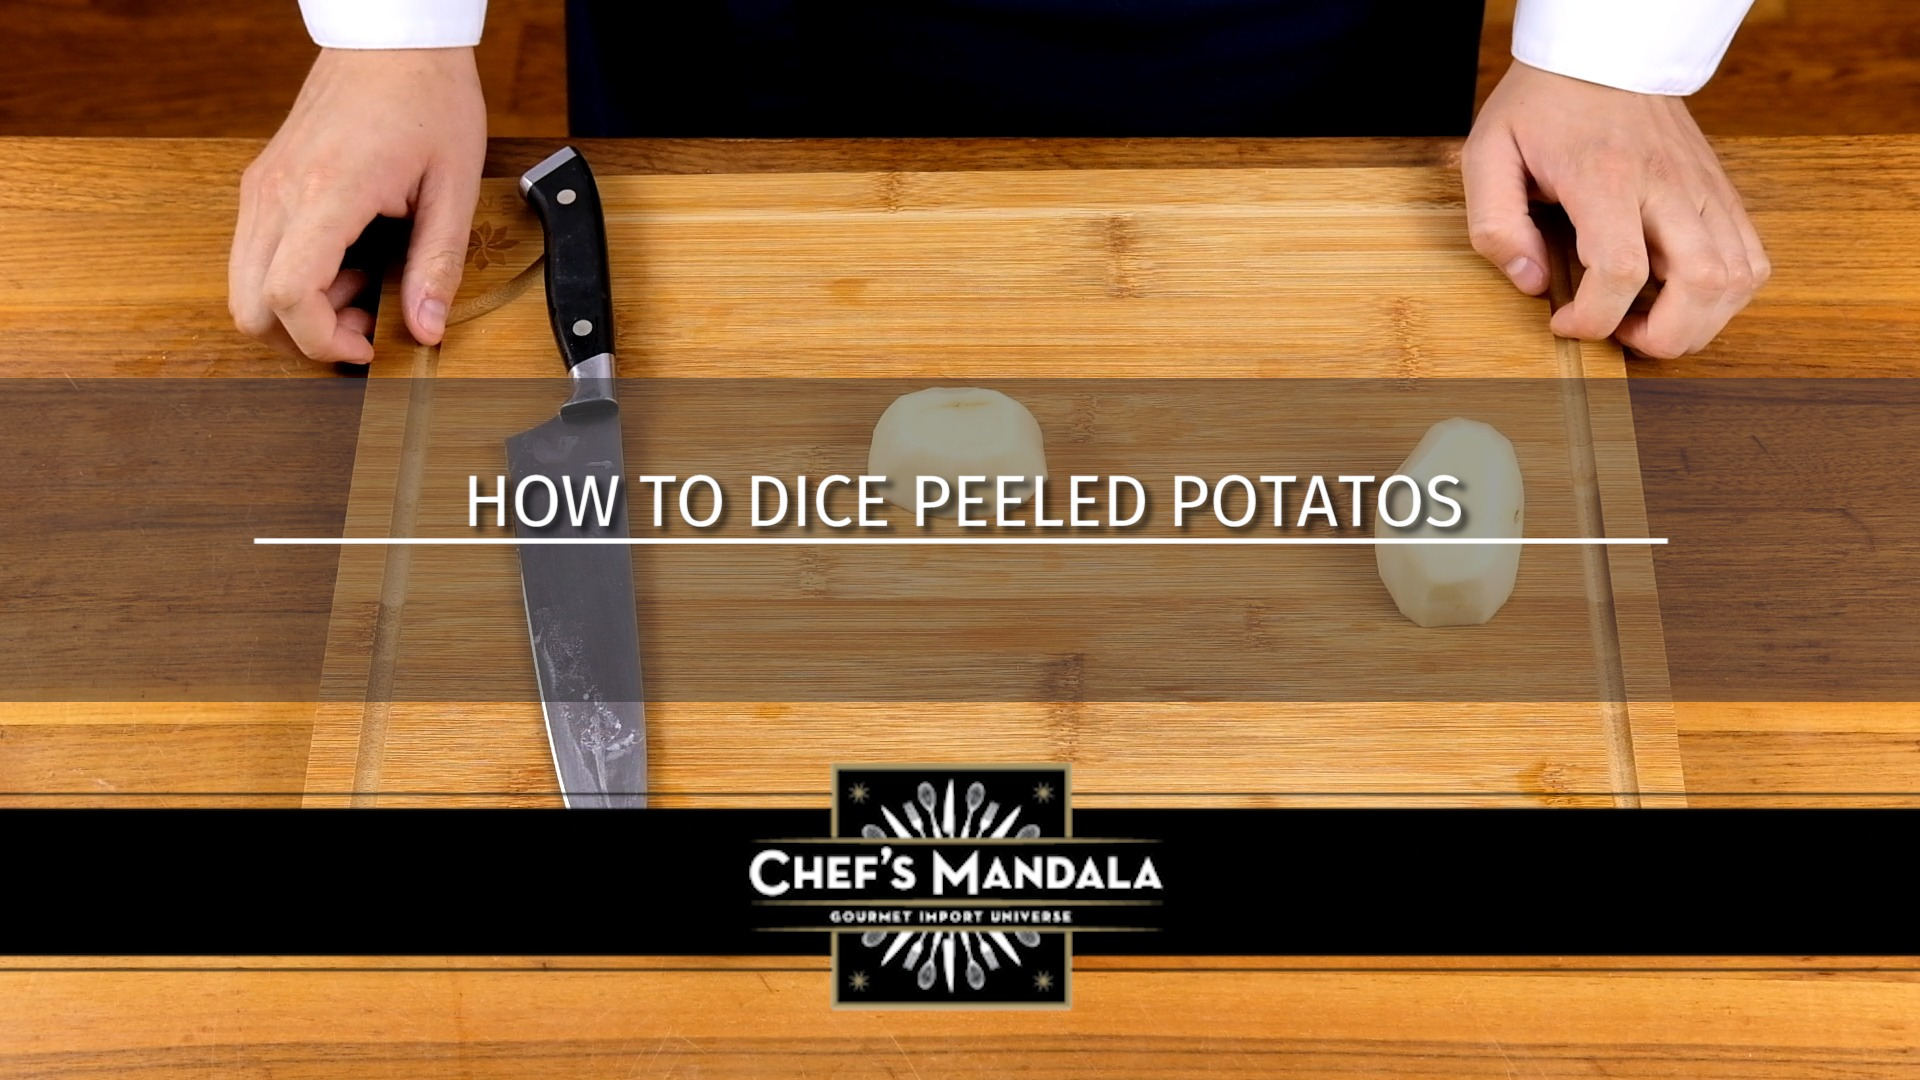 HOW TO DICE PEELED POTATOES